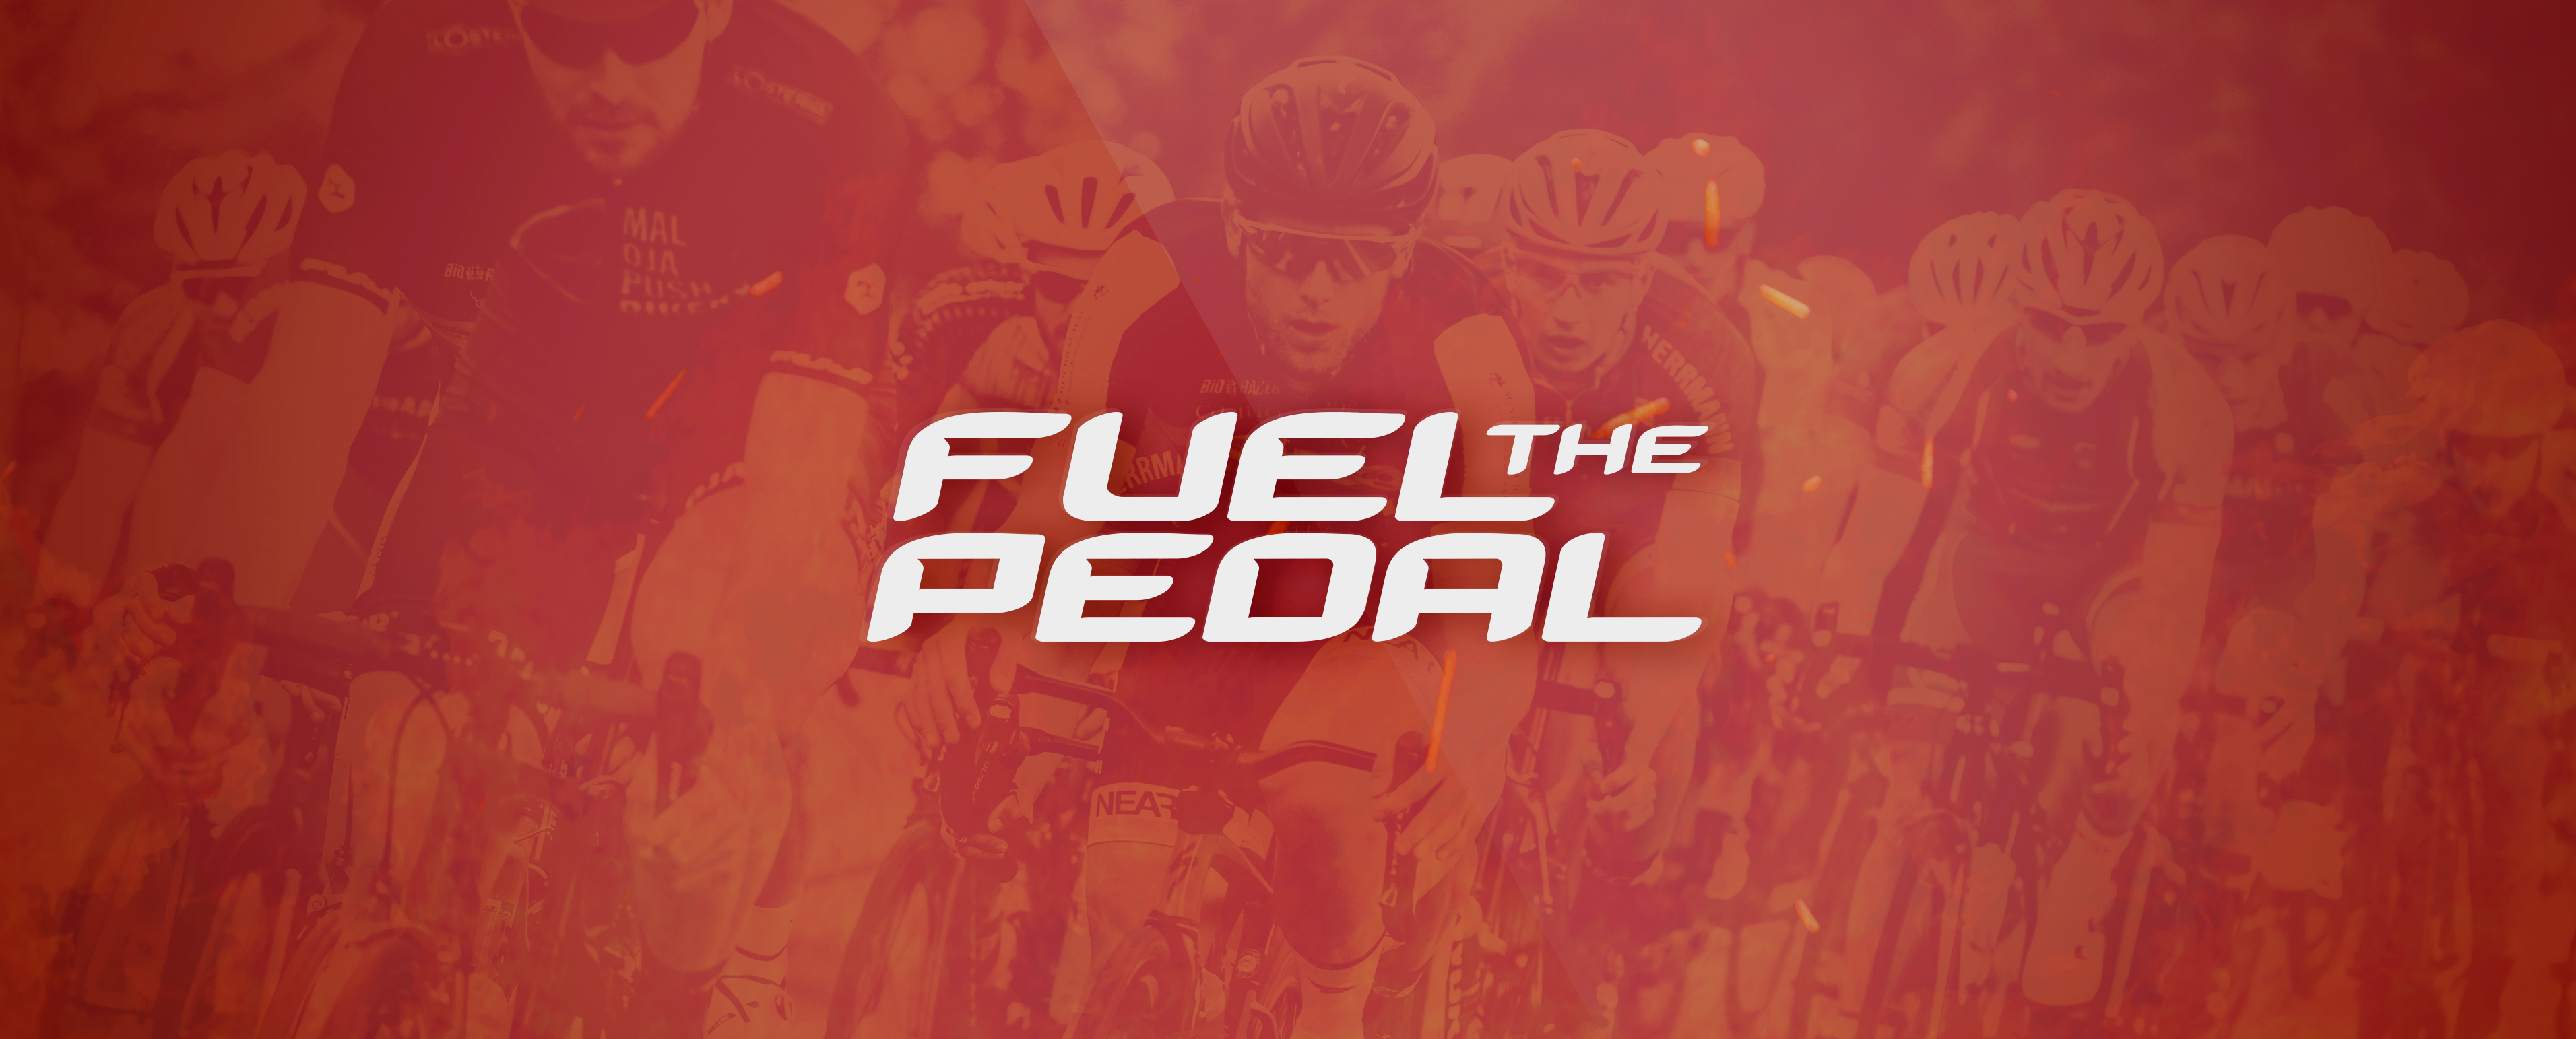 fuel the pedal images 9